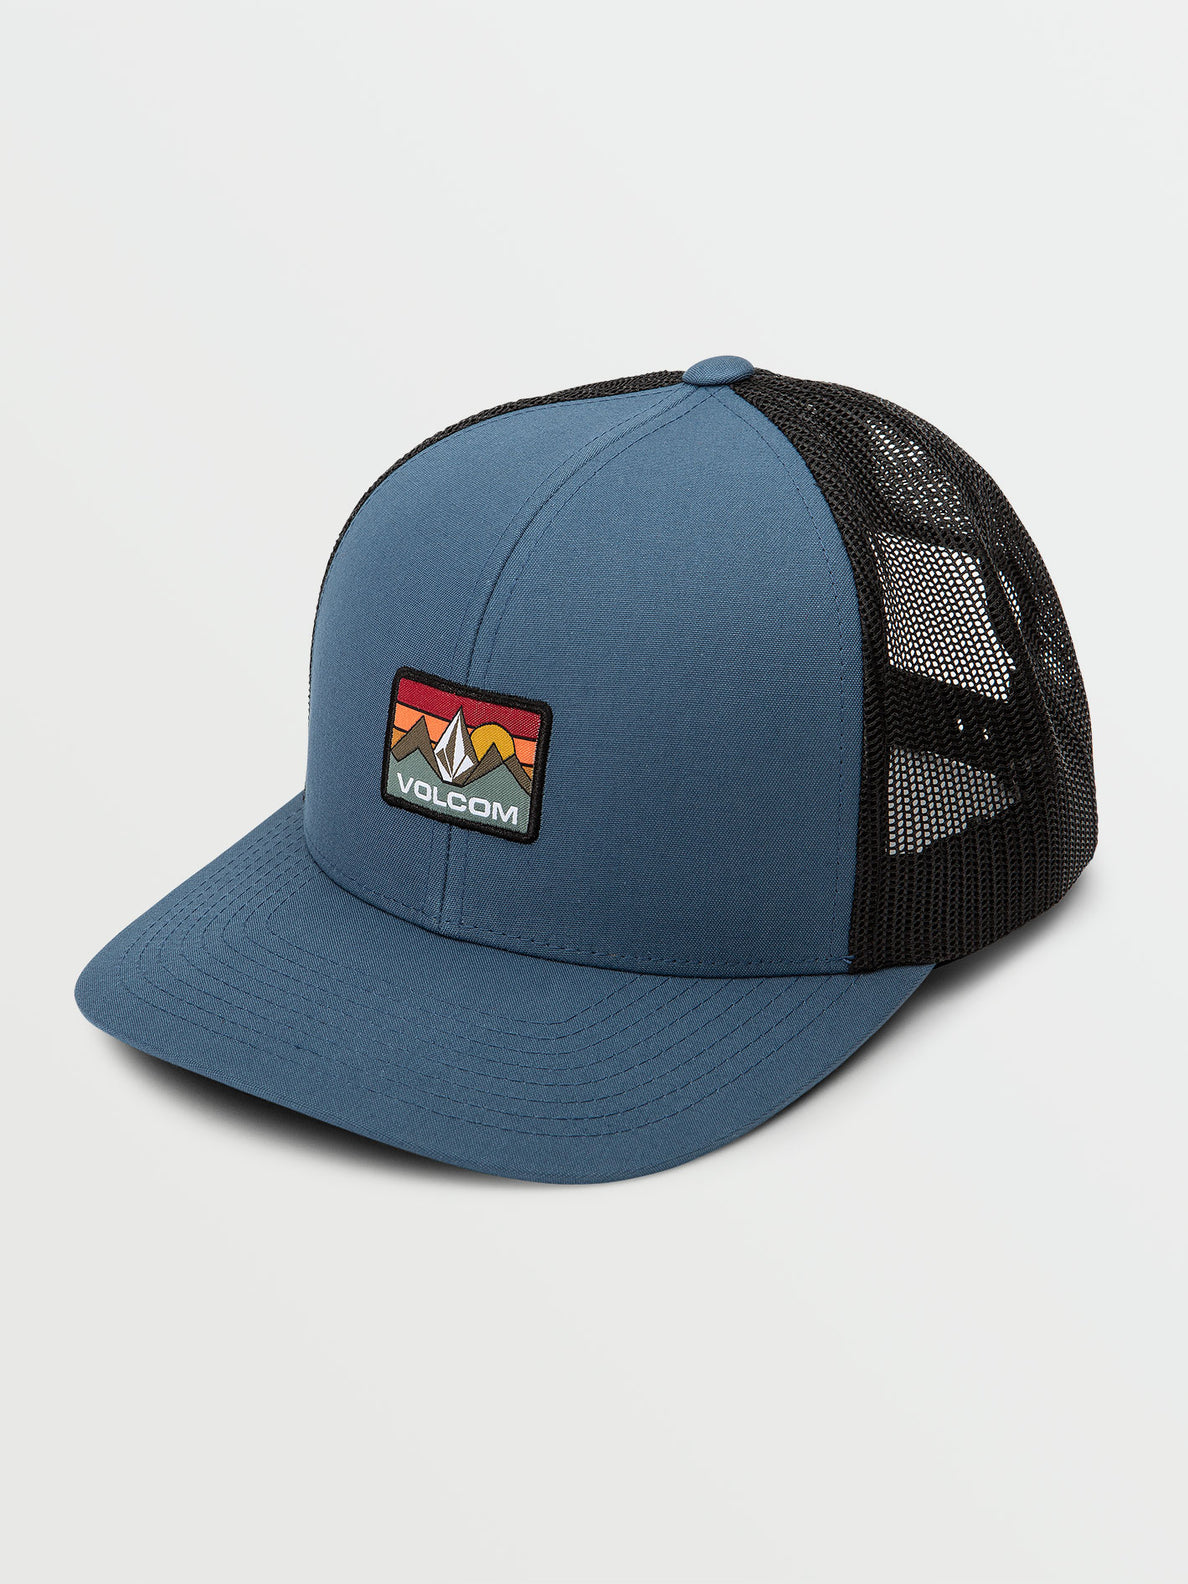 Stone Hill Cheese Hat - Horizon Blue